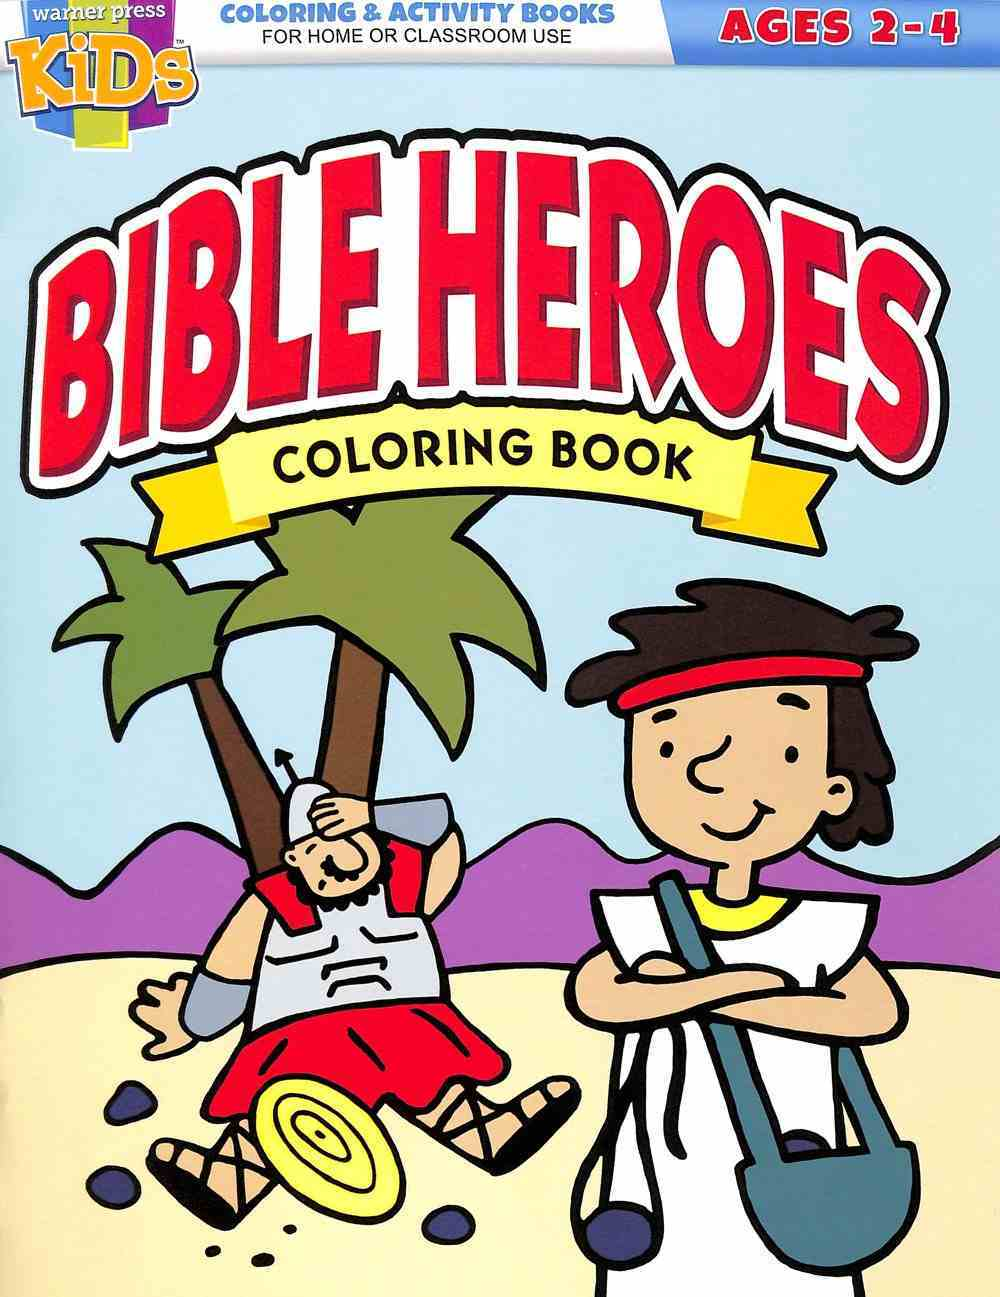 Bible Heroes Coloring Book (Reproducible) (Ages 2-4) (Warner Press Colouring & Activity Books Series) Paperback